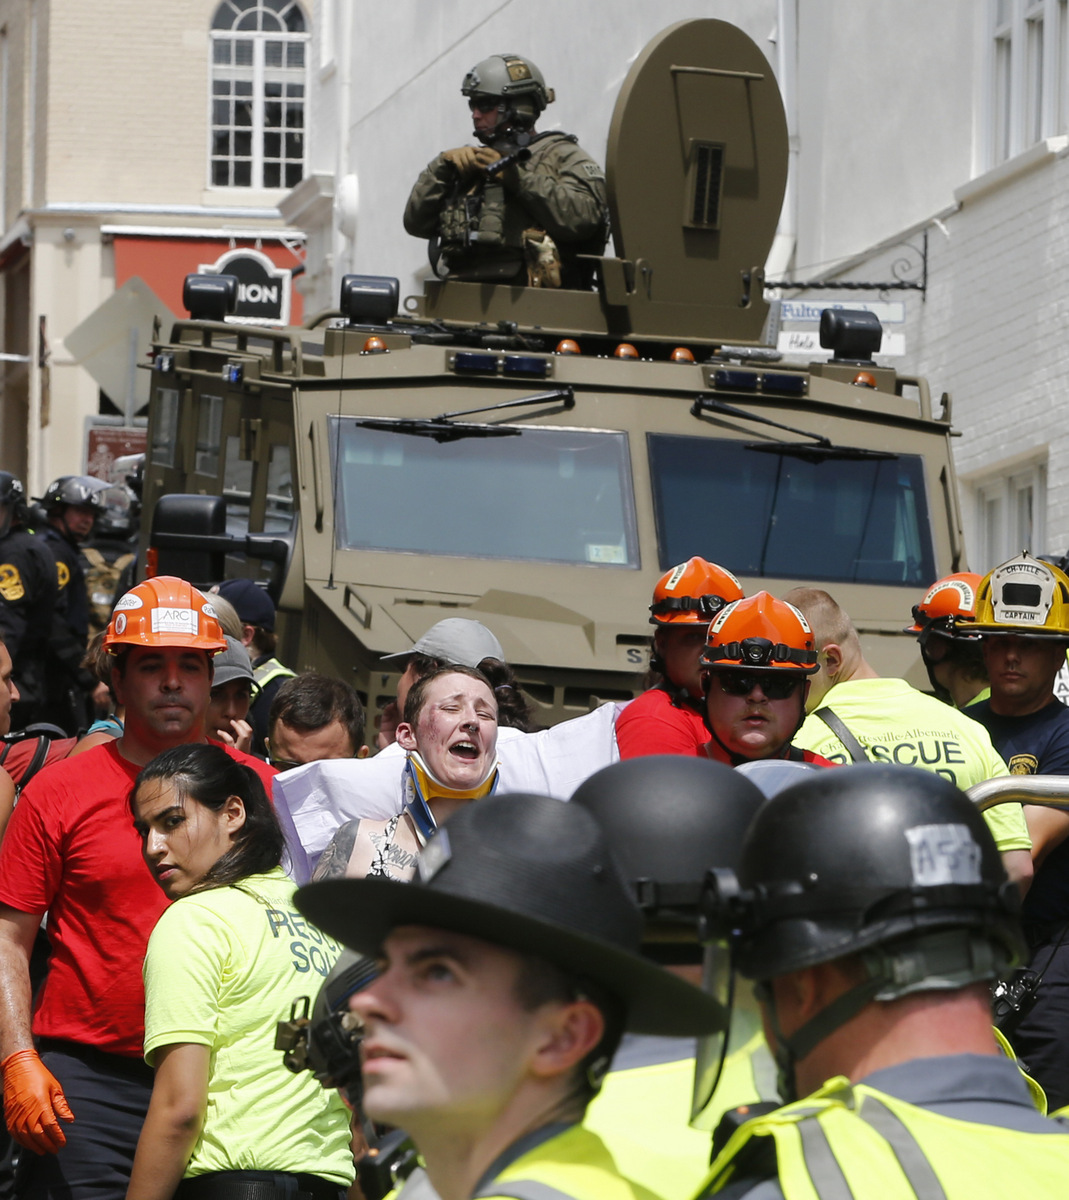 Rescue personnel help injured people while police patrol in armored vehicles after a car ran into a large group of protesters after an white nationalist rally in Charlottesville, Va., Aug. 12, 2017. (AP/Steve Helber)